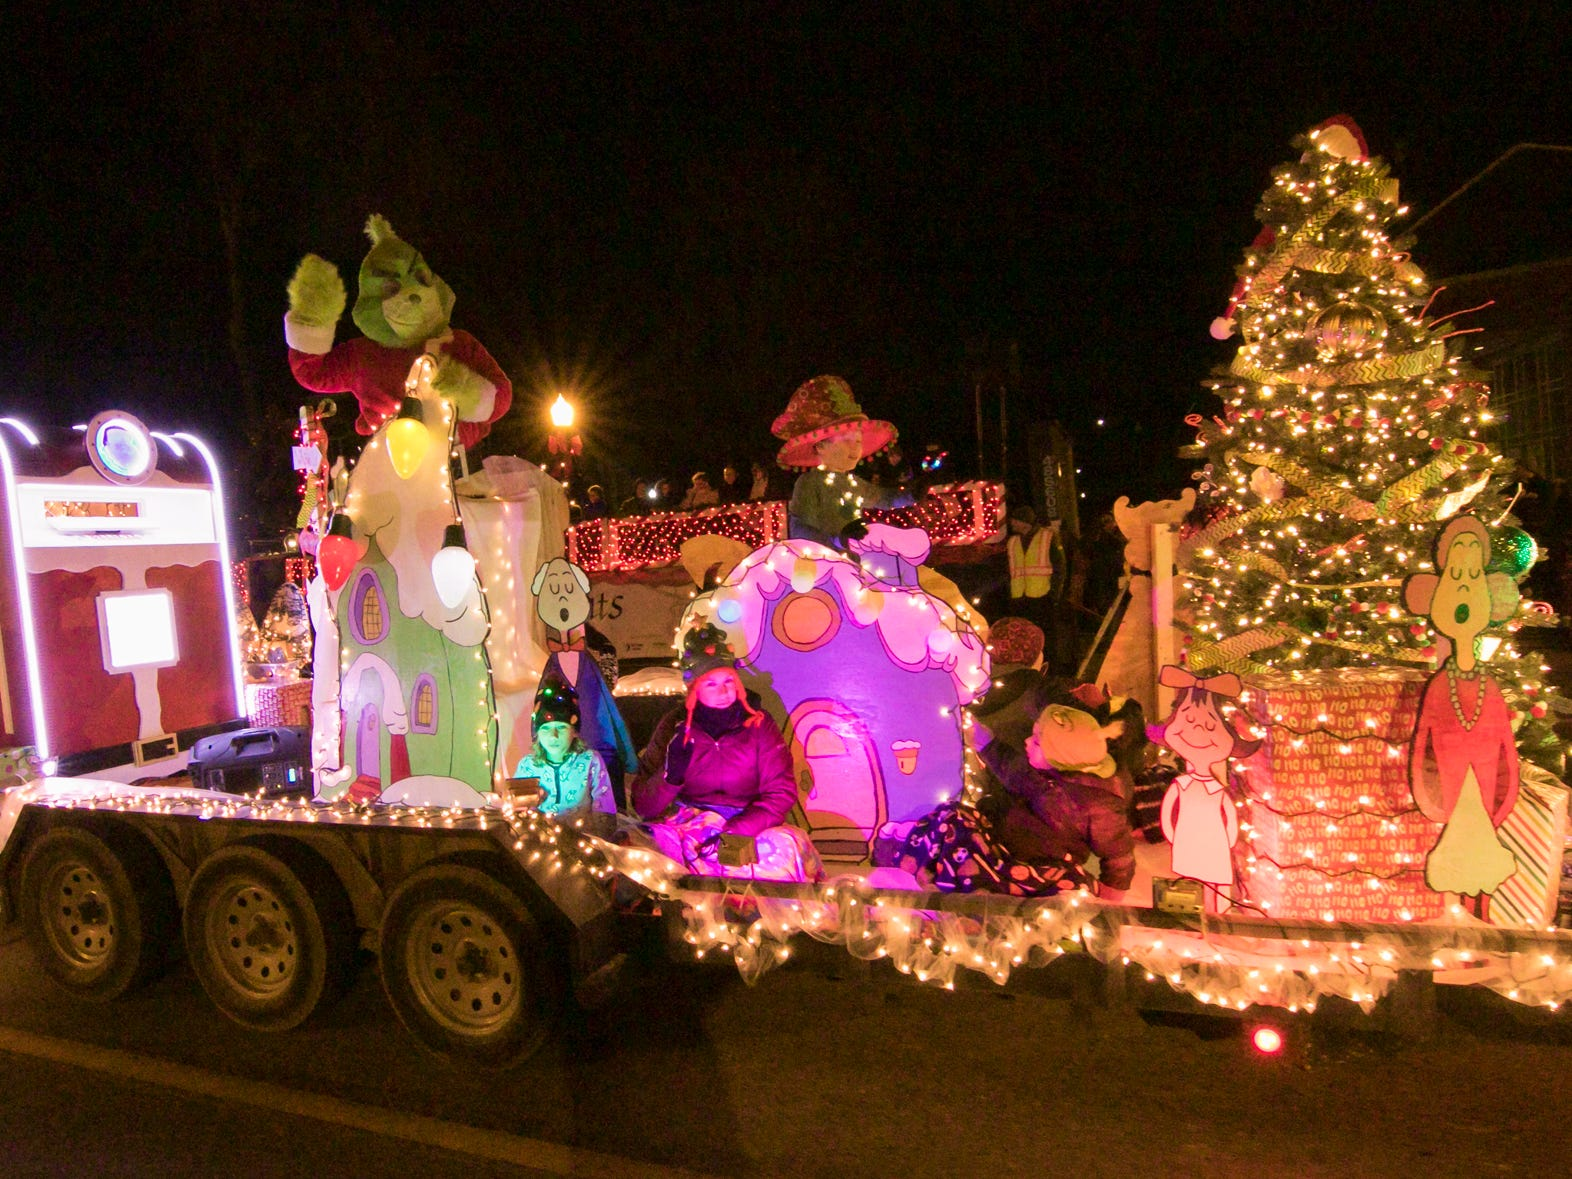 The Howell Parks and Recreation Authority float in the Fantasy of Lights parade Friday, Nov. 23, 2018.